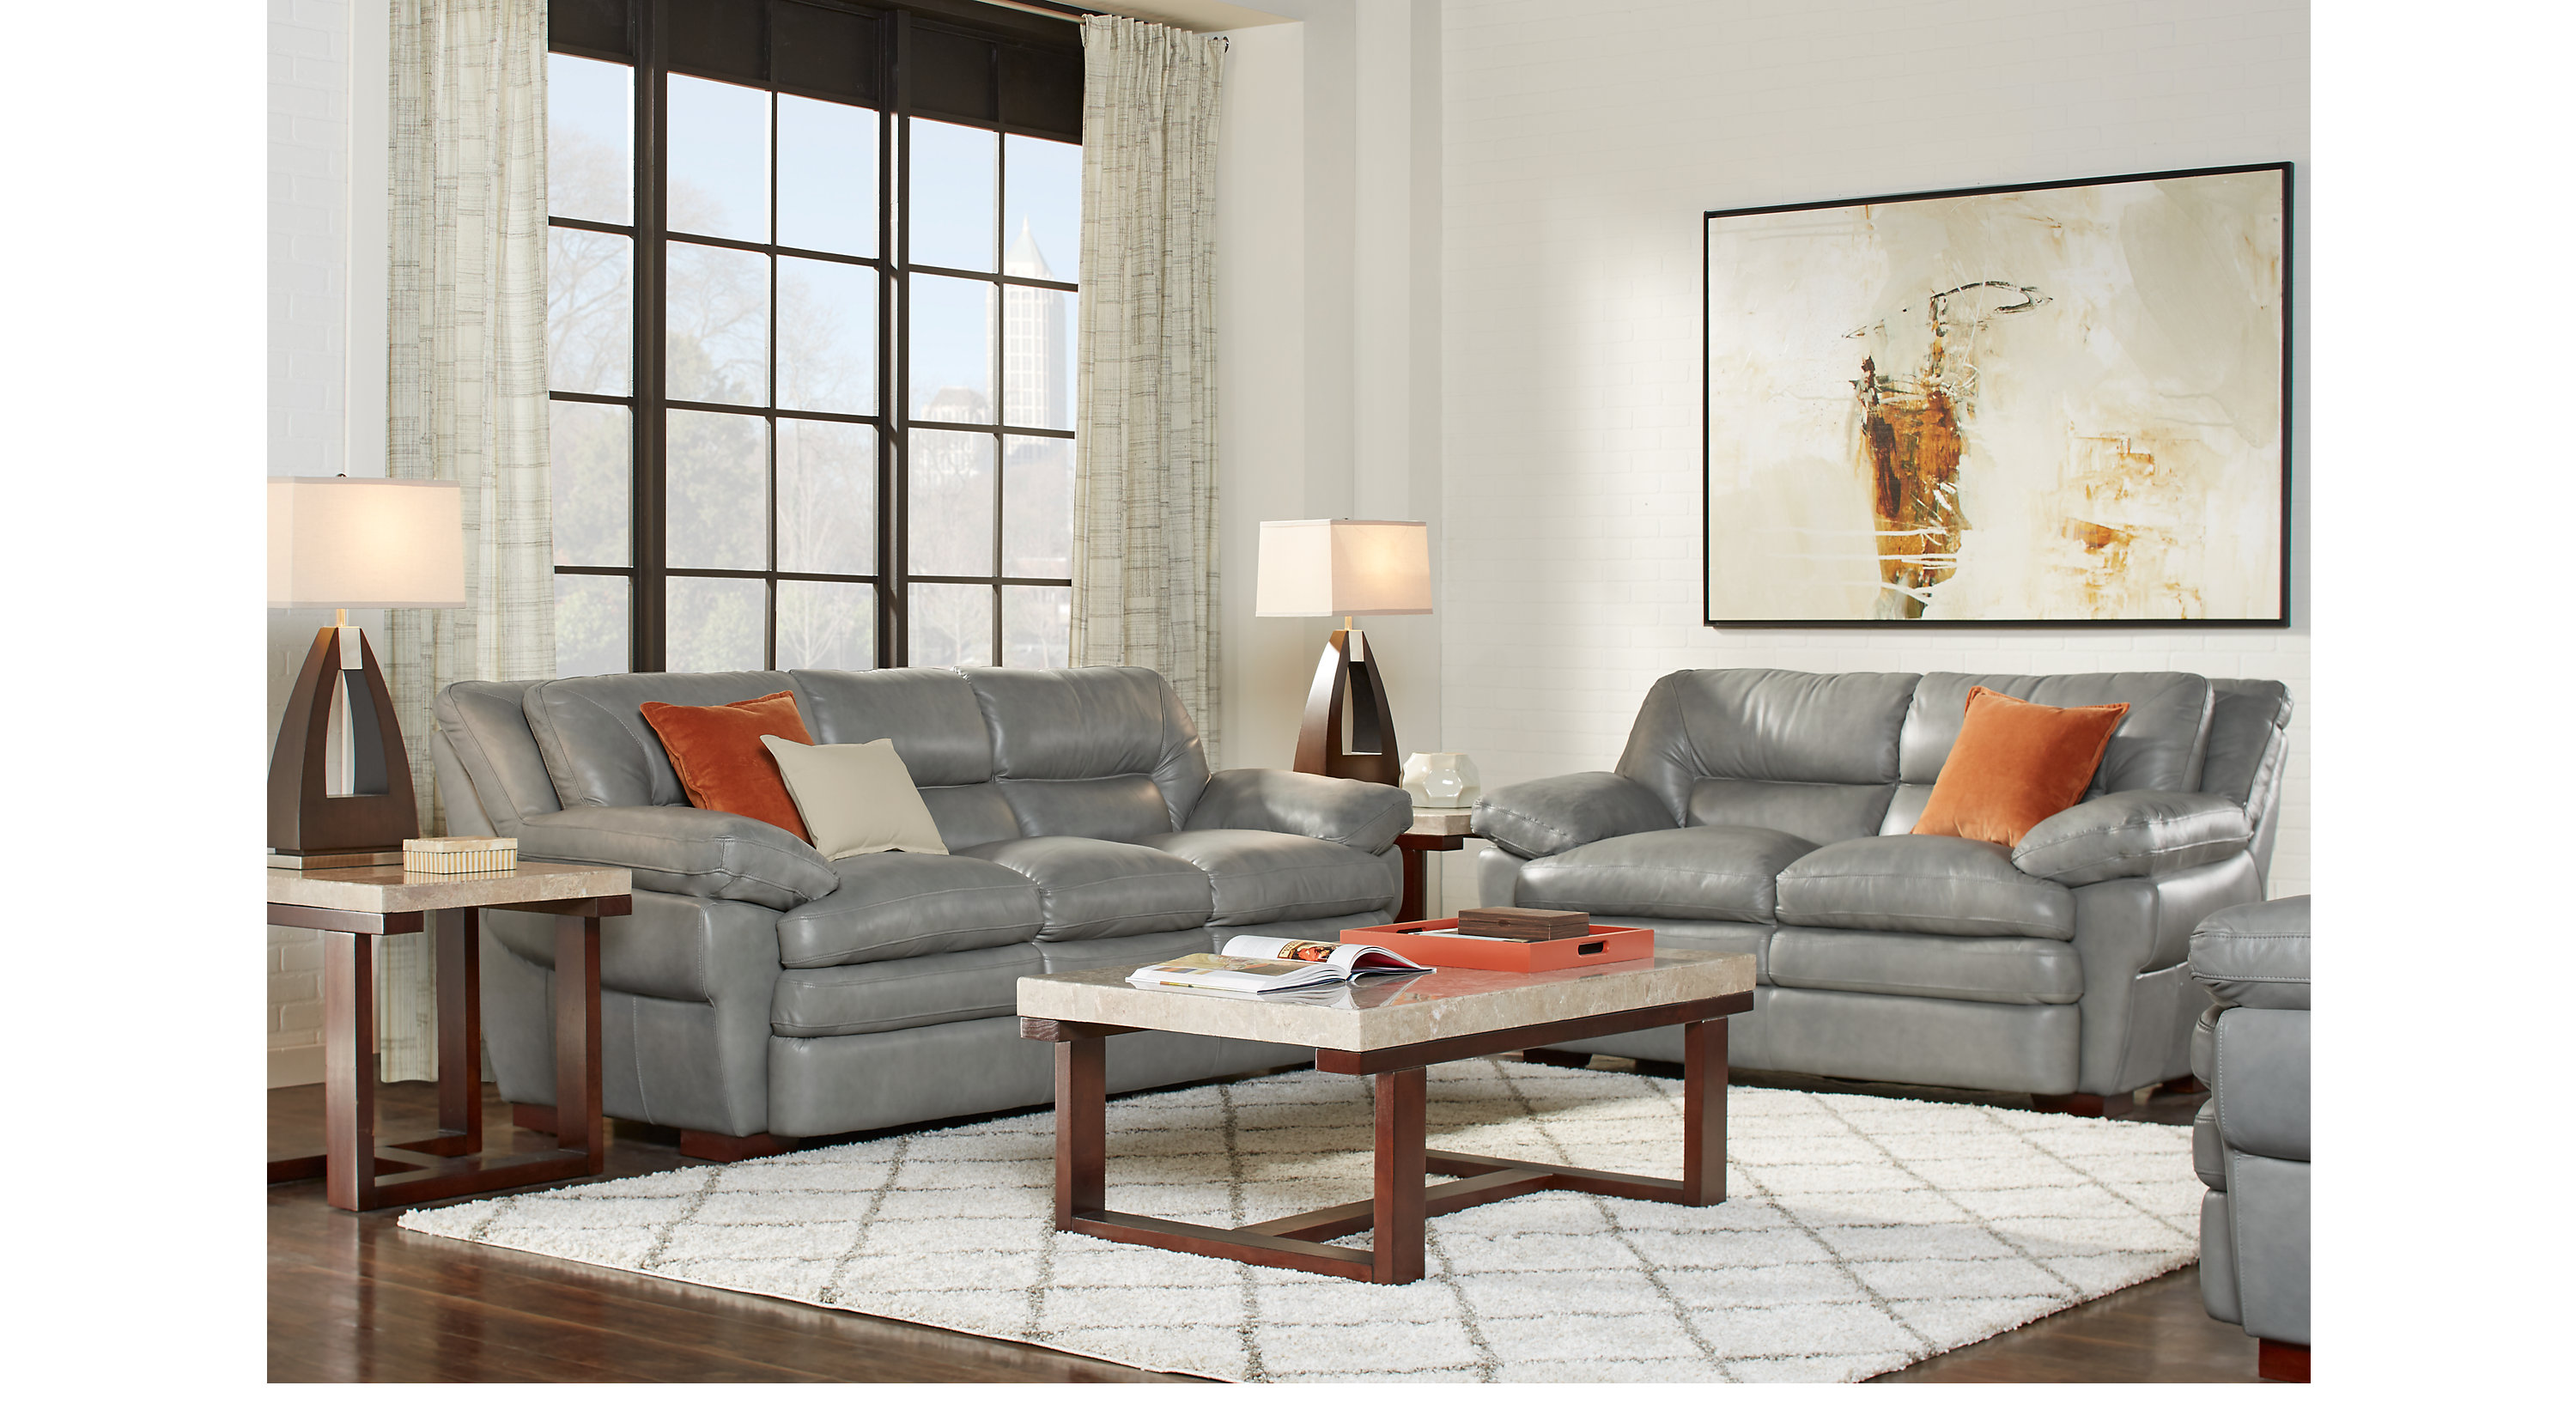 Aventino gray leather 5 pc living room